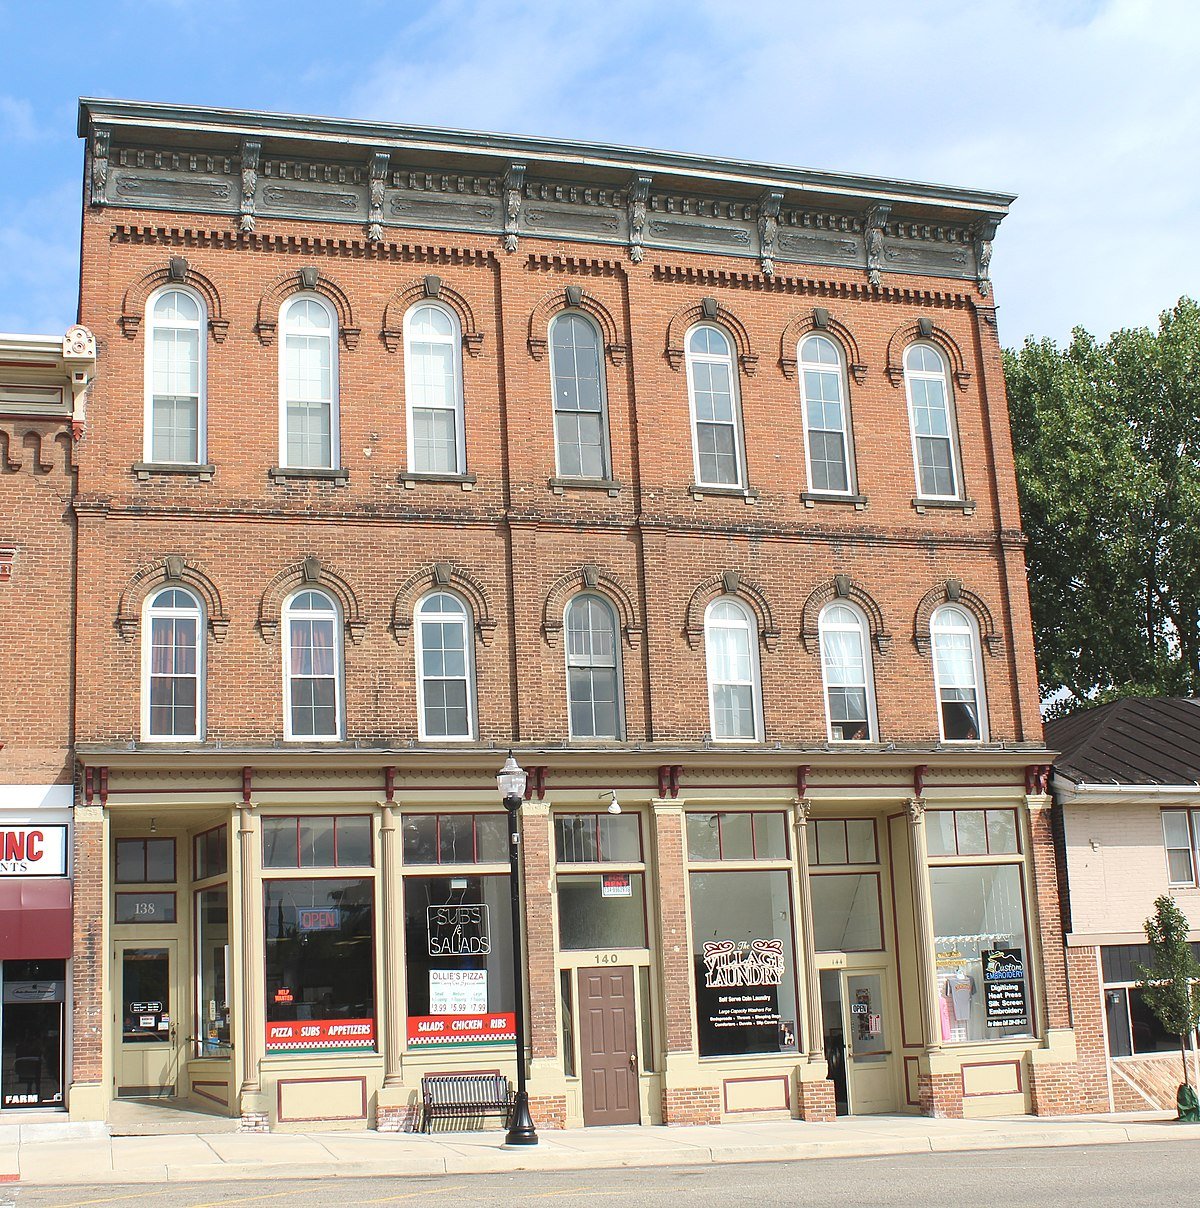 76 Best Images About Historic Downtown Storefronts On: Goodyear Block